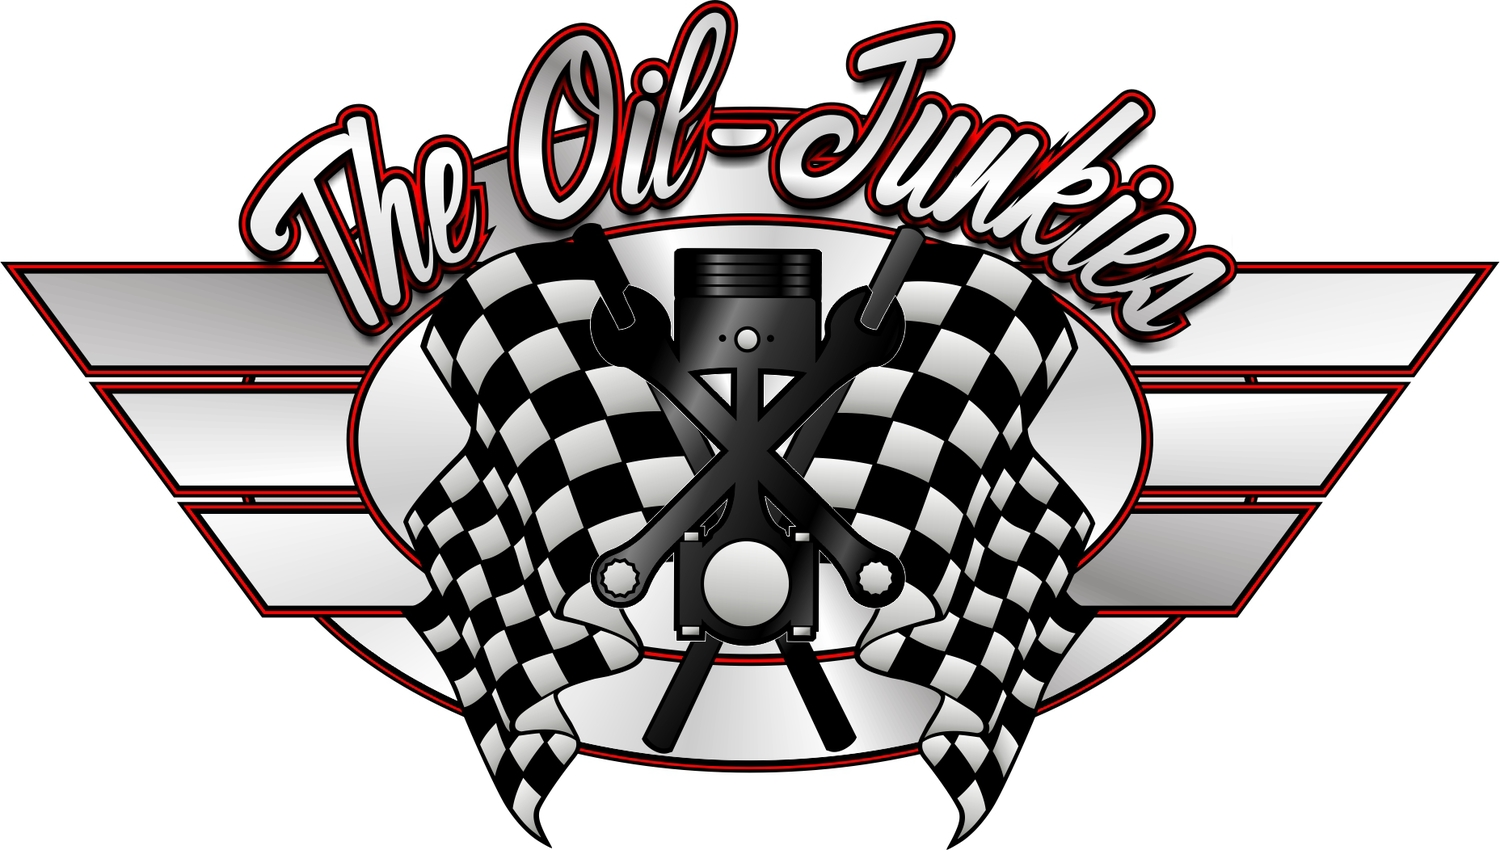 The Oil Junkies